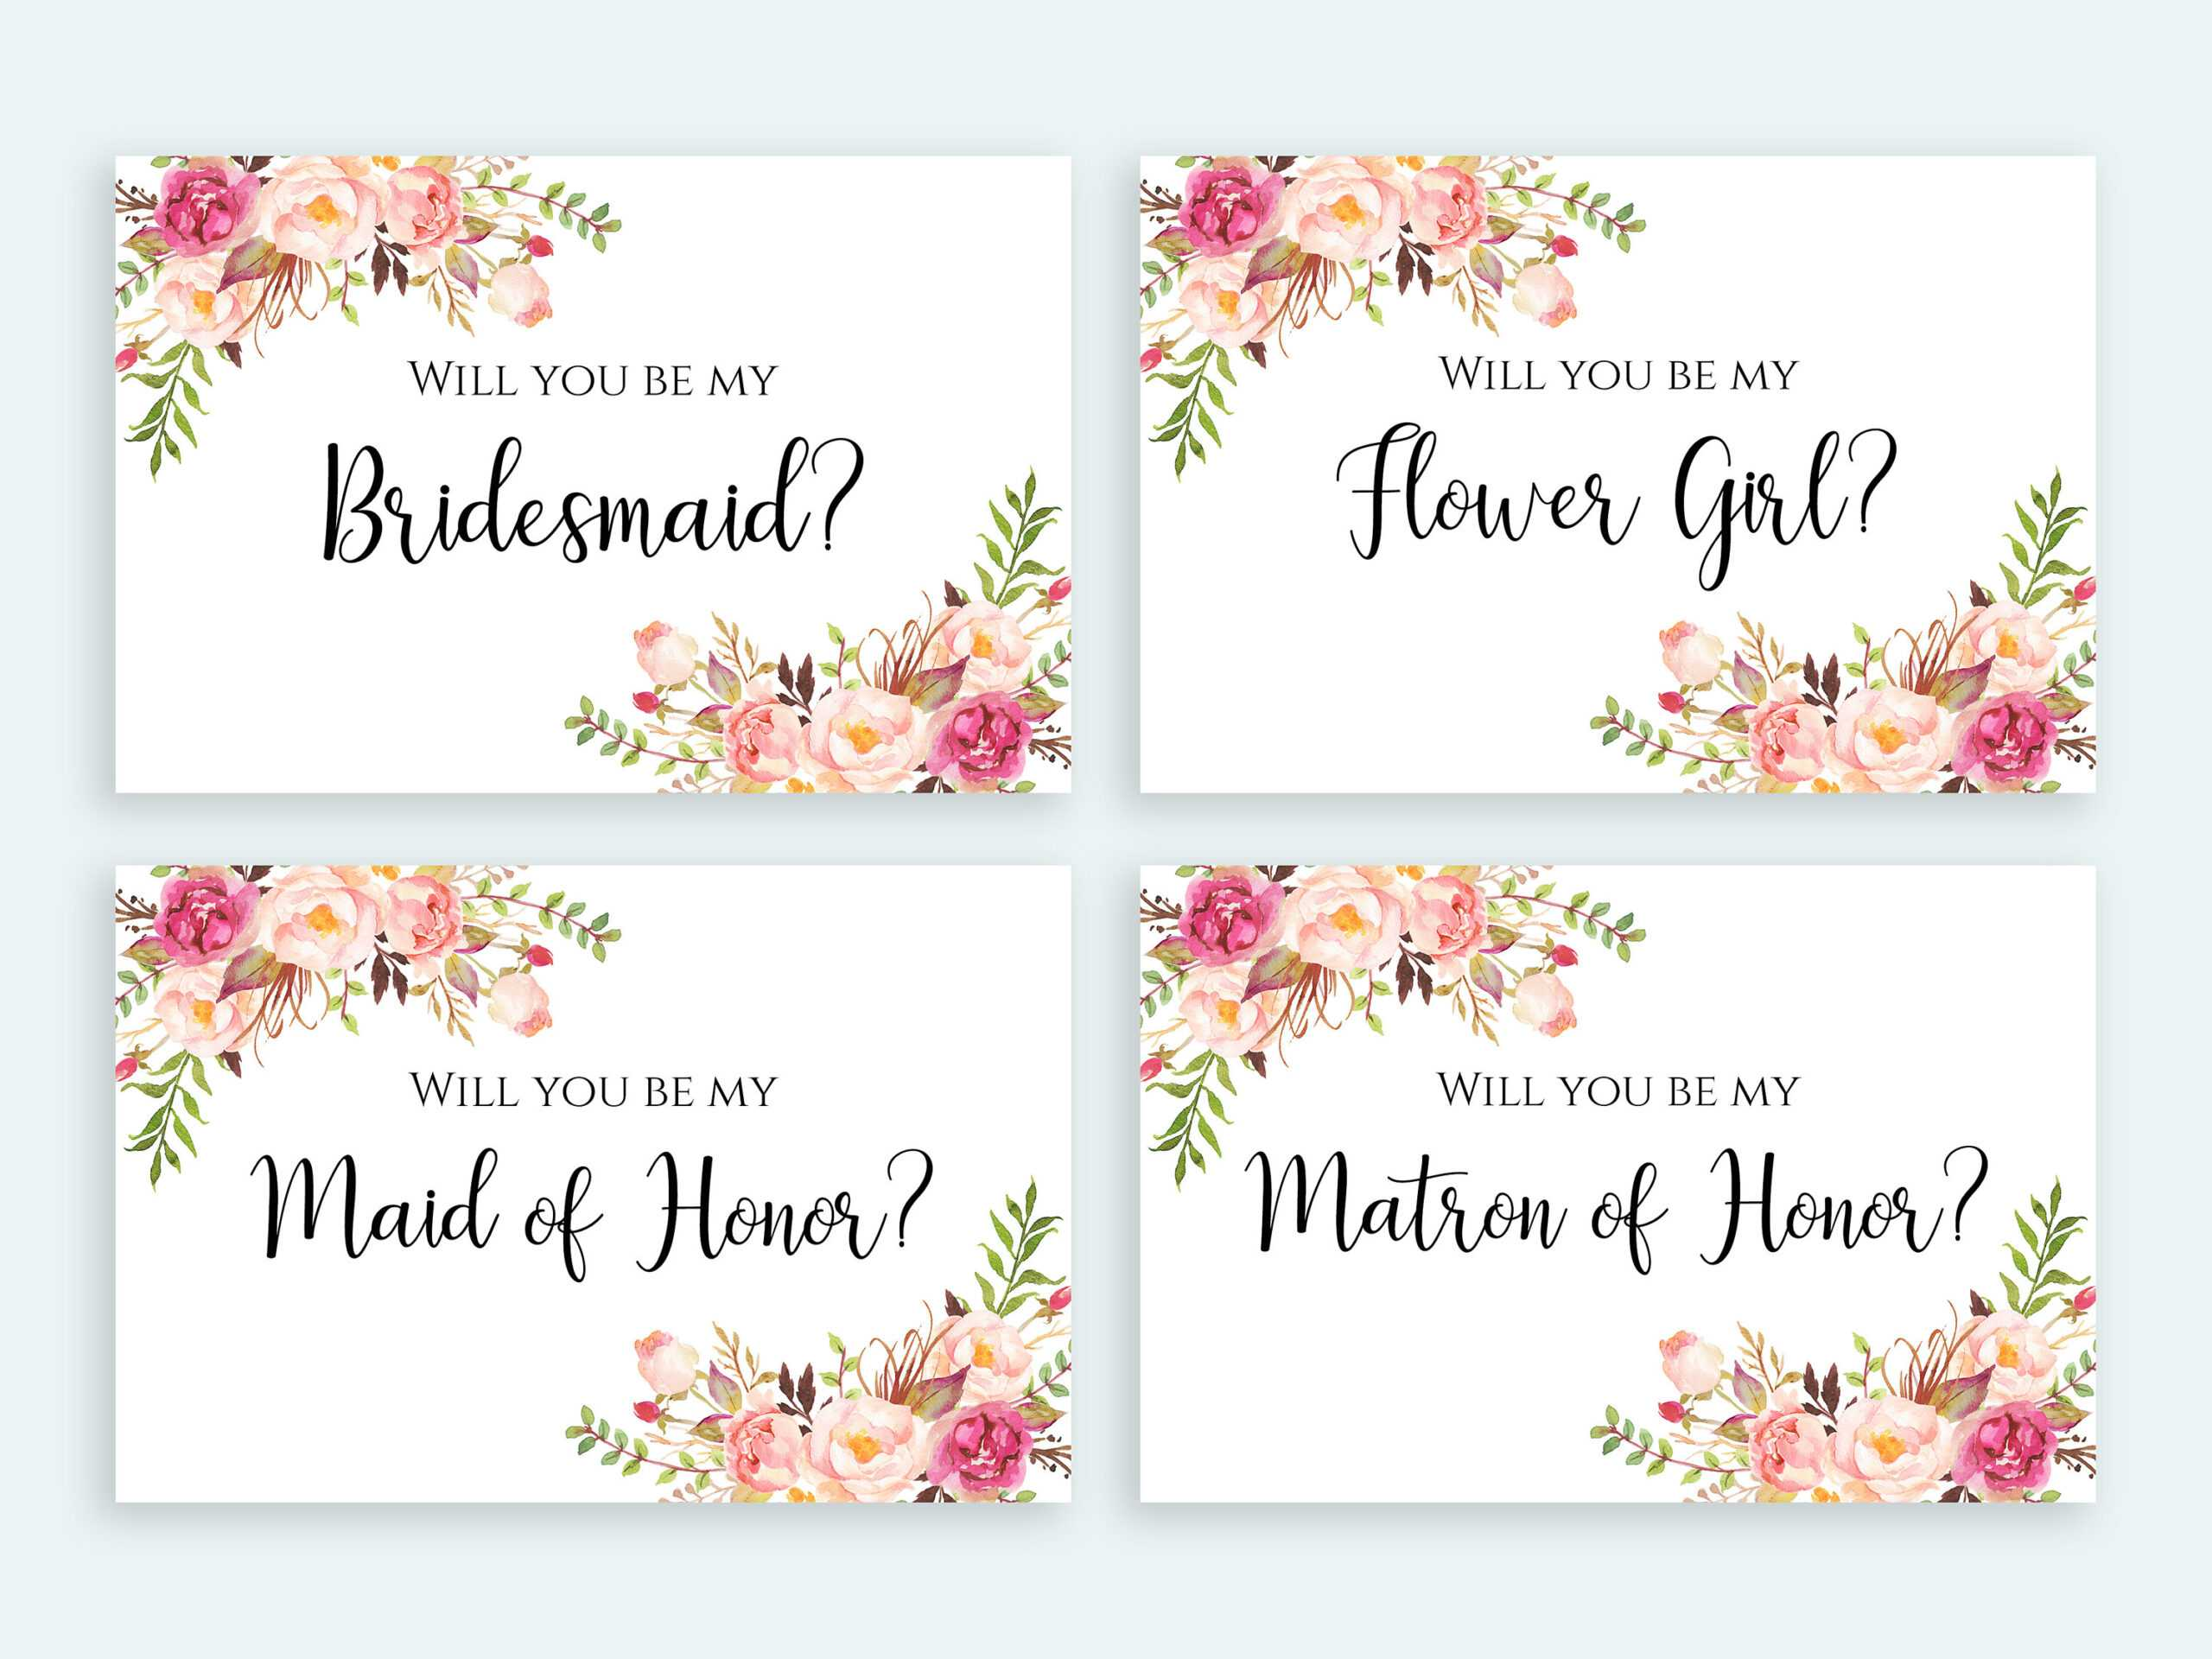 Will You Be My Bridesmaid Card Printable Set Floral Cards Multipack Flower  Girl Invitation Pack Digital Download Pdf Jpeg Template Print Regarding Will You Be My Bridesmaid Card Template